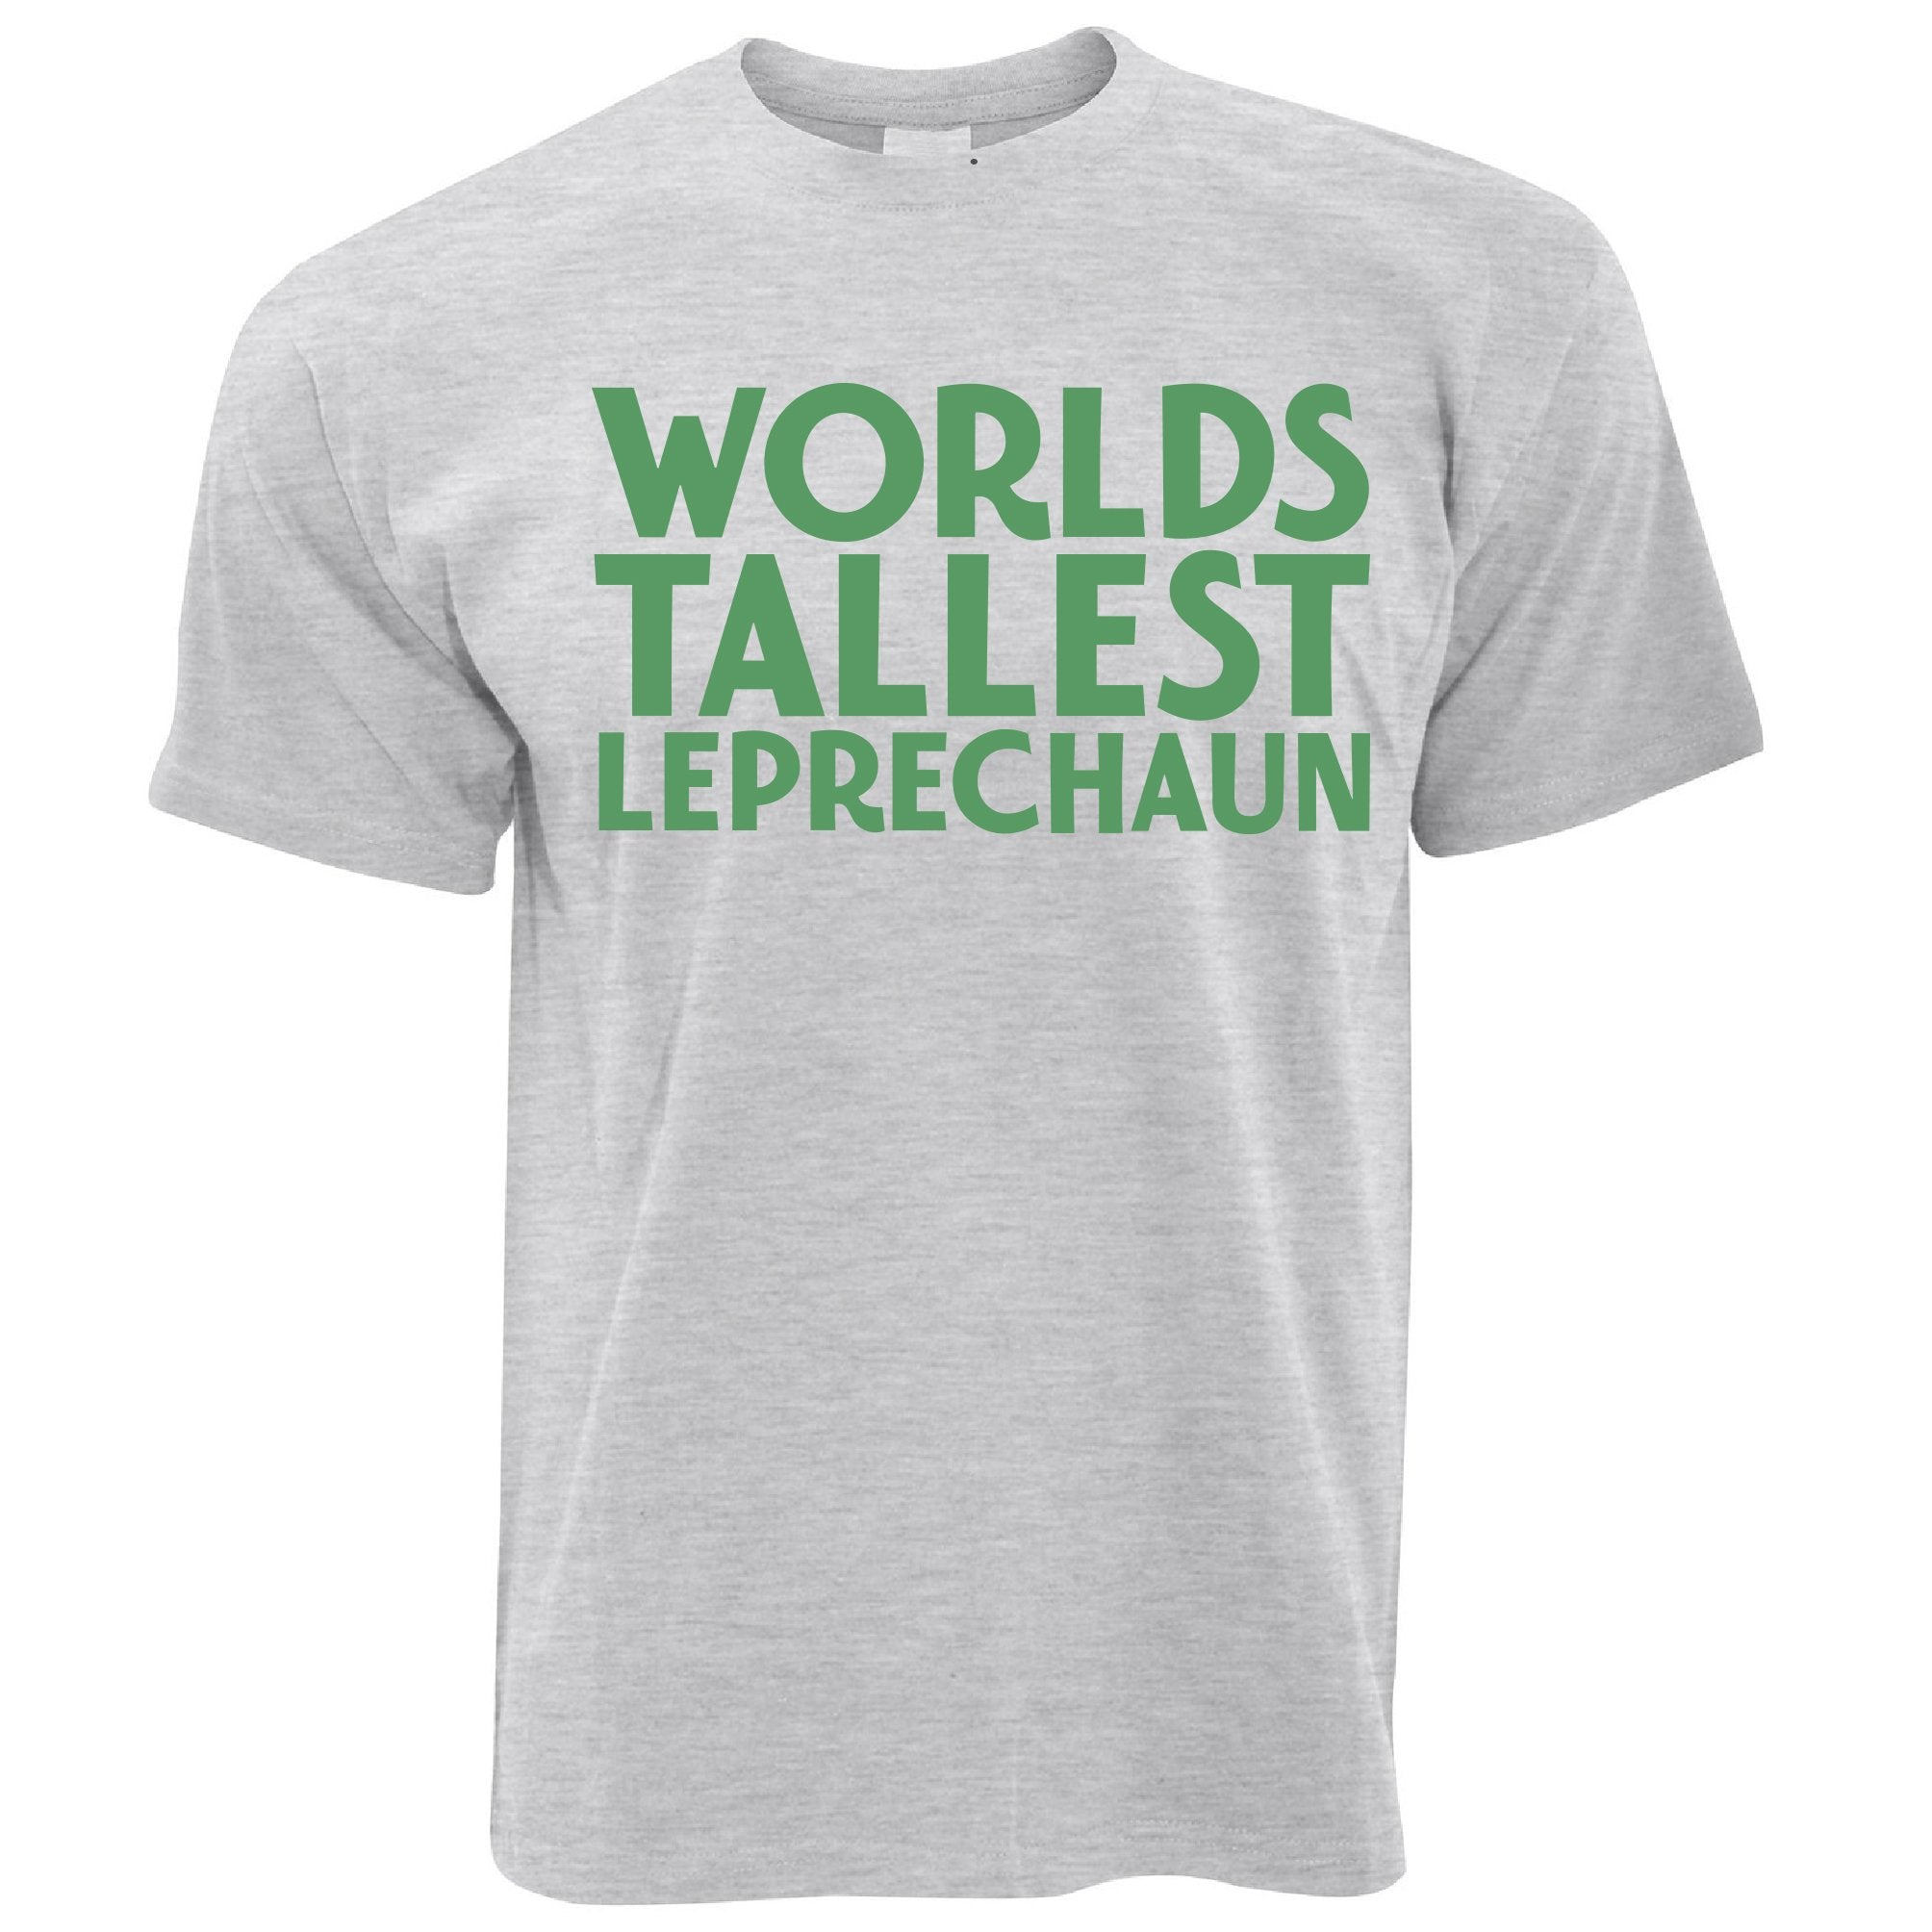 St Patricks Day Joke T Shirt Worlds Tallest Leprechaun